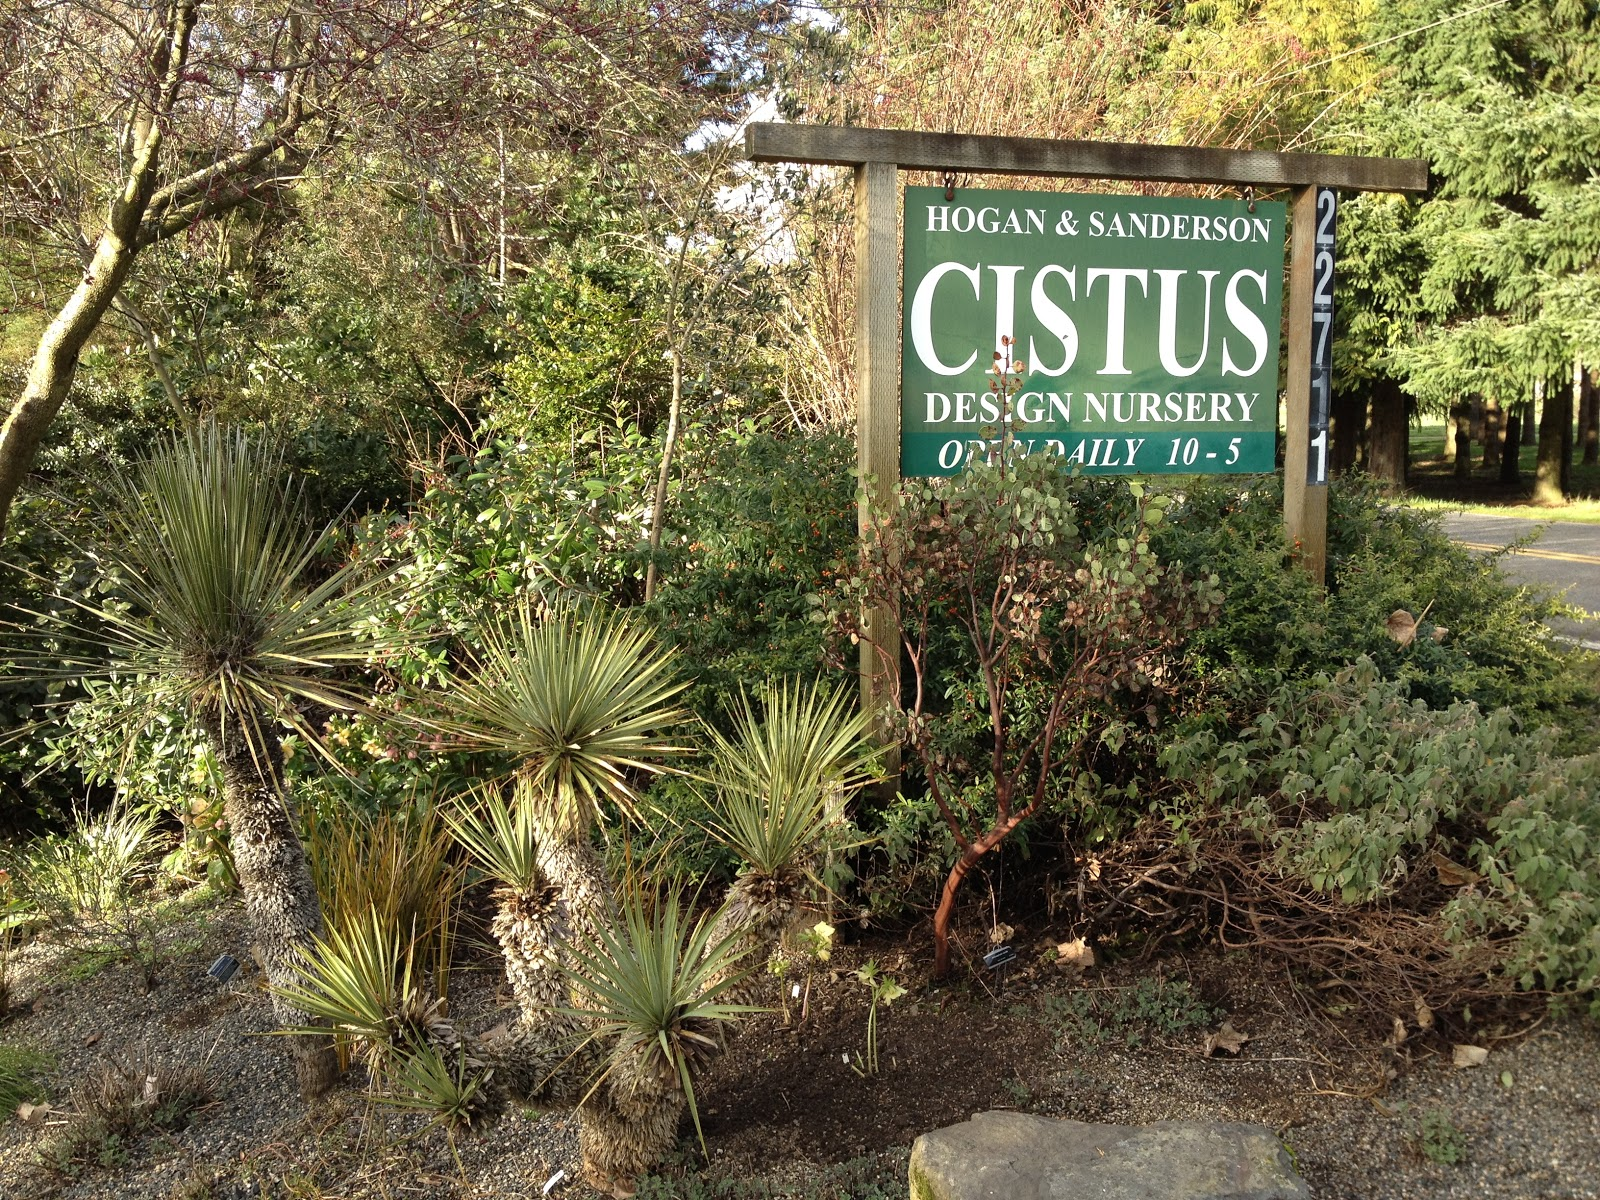 Cistus Nursery Is A Plant Geek S You Won T Find Very Many Fruit Trees Or Frilly Flowers Here Their Specialty In Rare Evergreen Structural